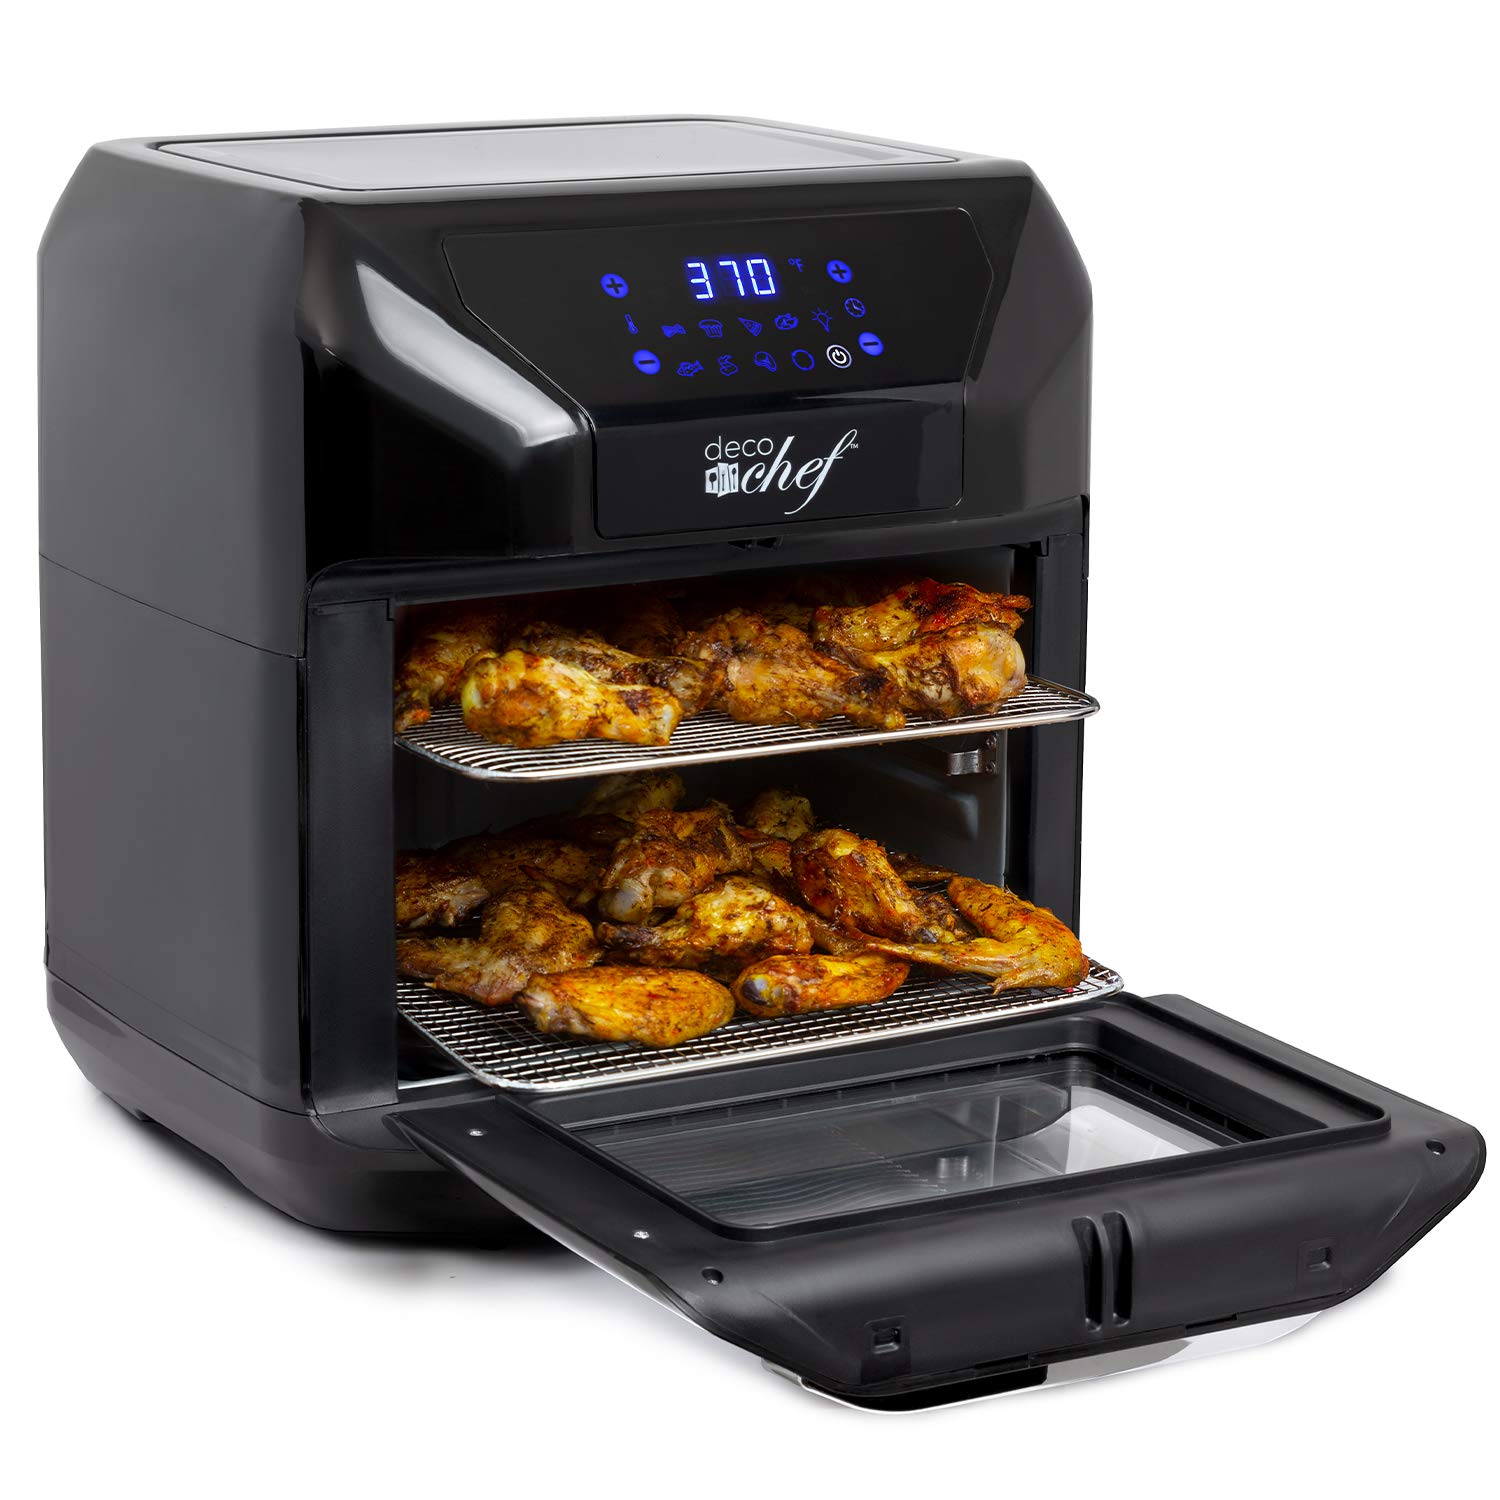 Deco Chef 7-in-1 Digital 10.5 QT Air Fryer Convection Oven Oil-Free Multi-Function X-Large Capacity with Simple Touch Display - Black